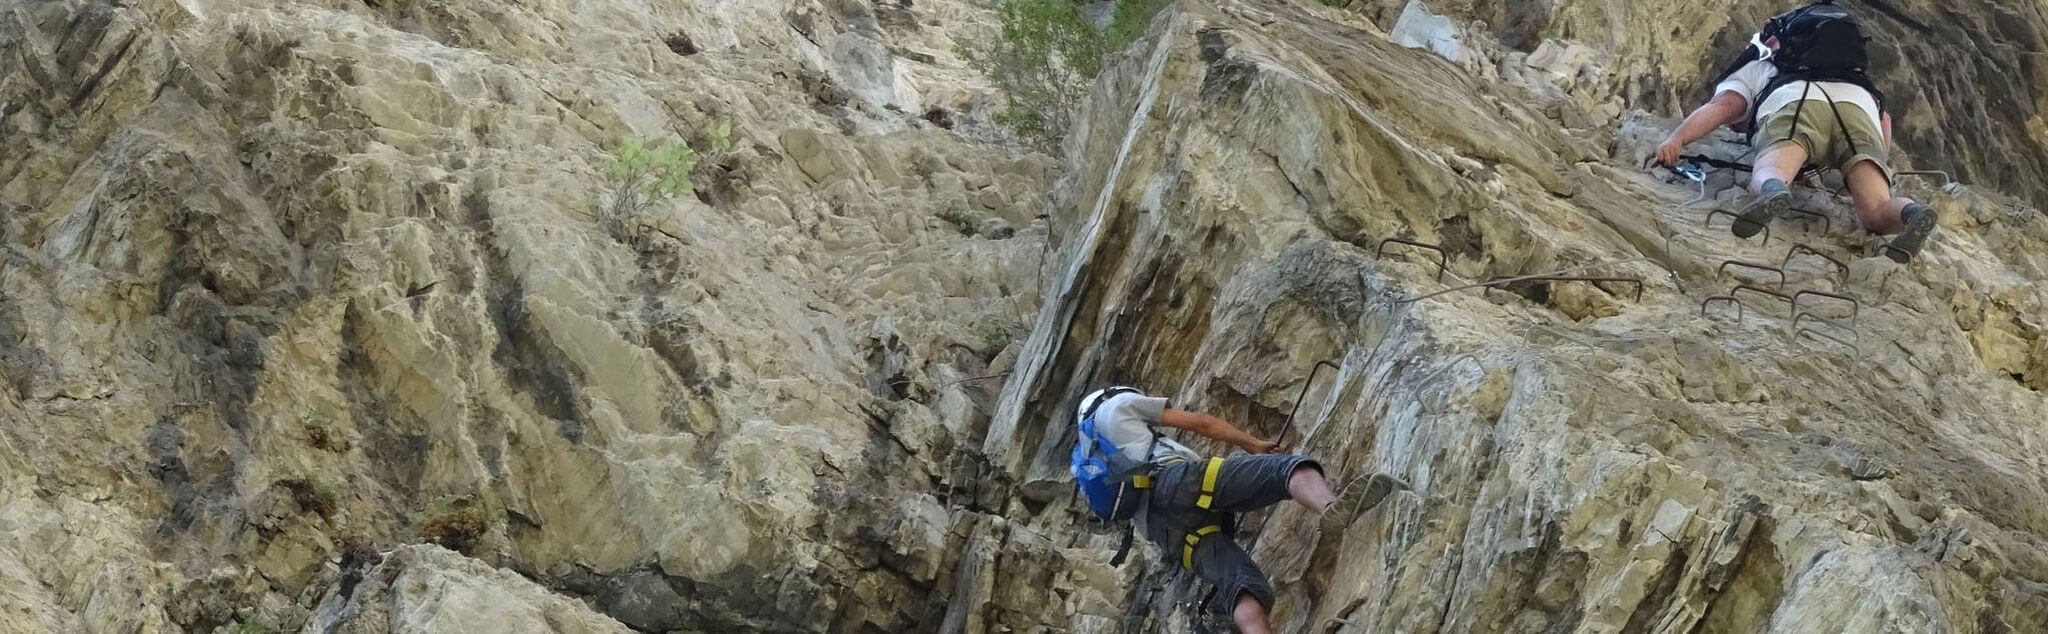 Vía Ferrata en Benasque